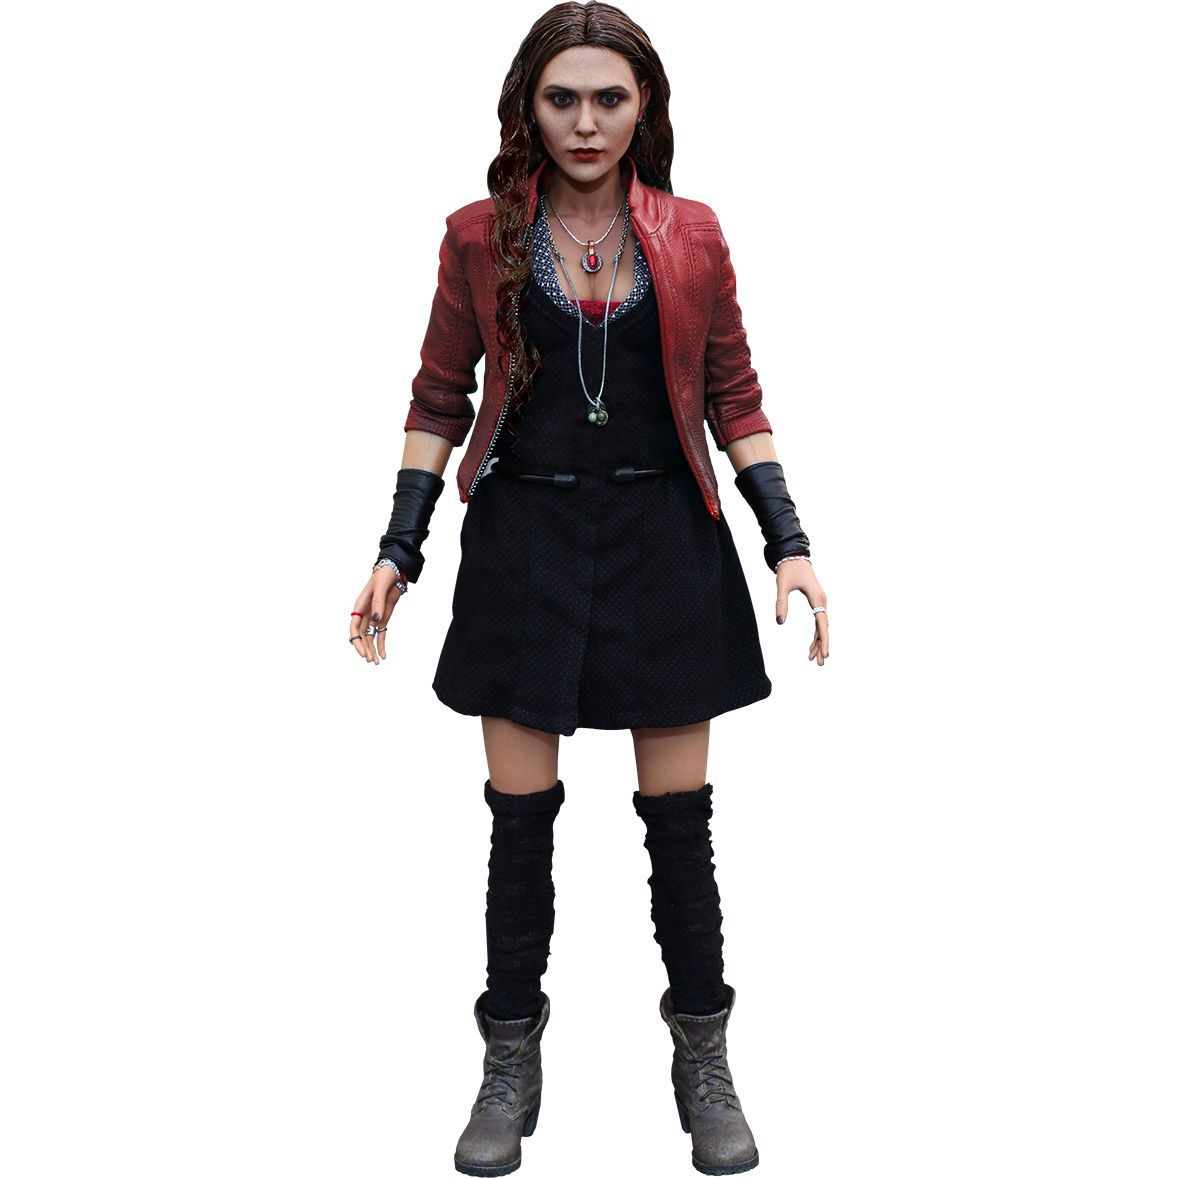 1//6 Scale Hot Toys MMS301 Avengers Ultron's heart AOU Scarlet Witch